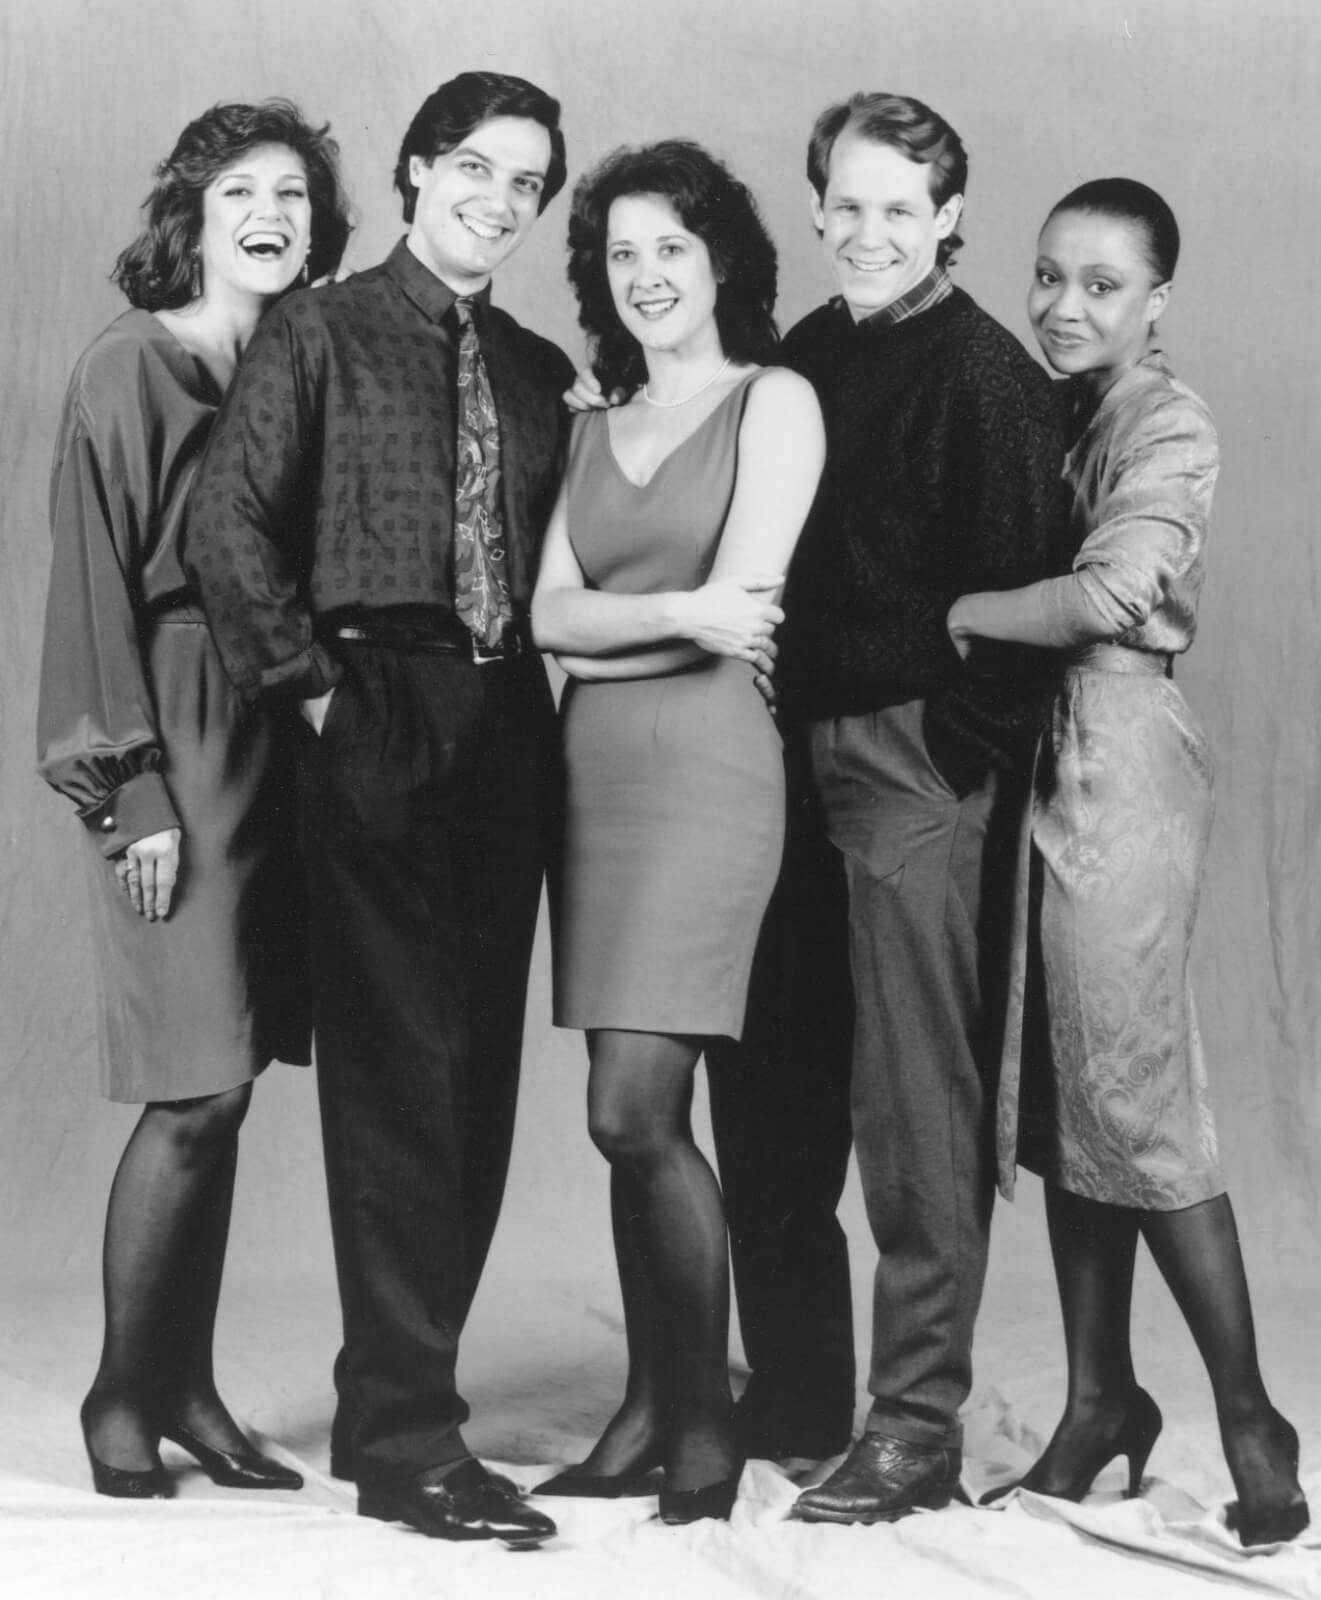 A black and white press photo of the full cast